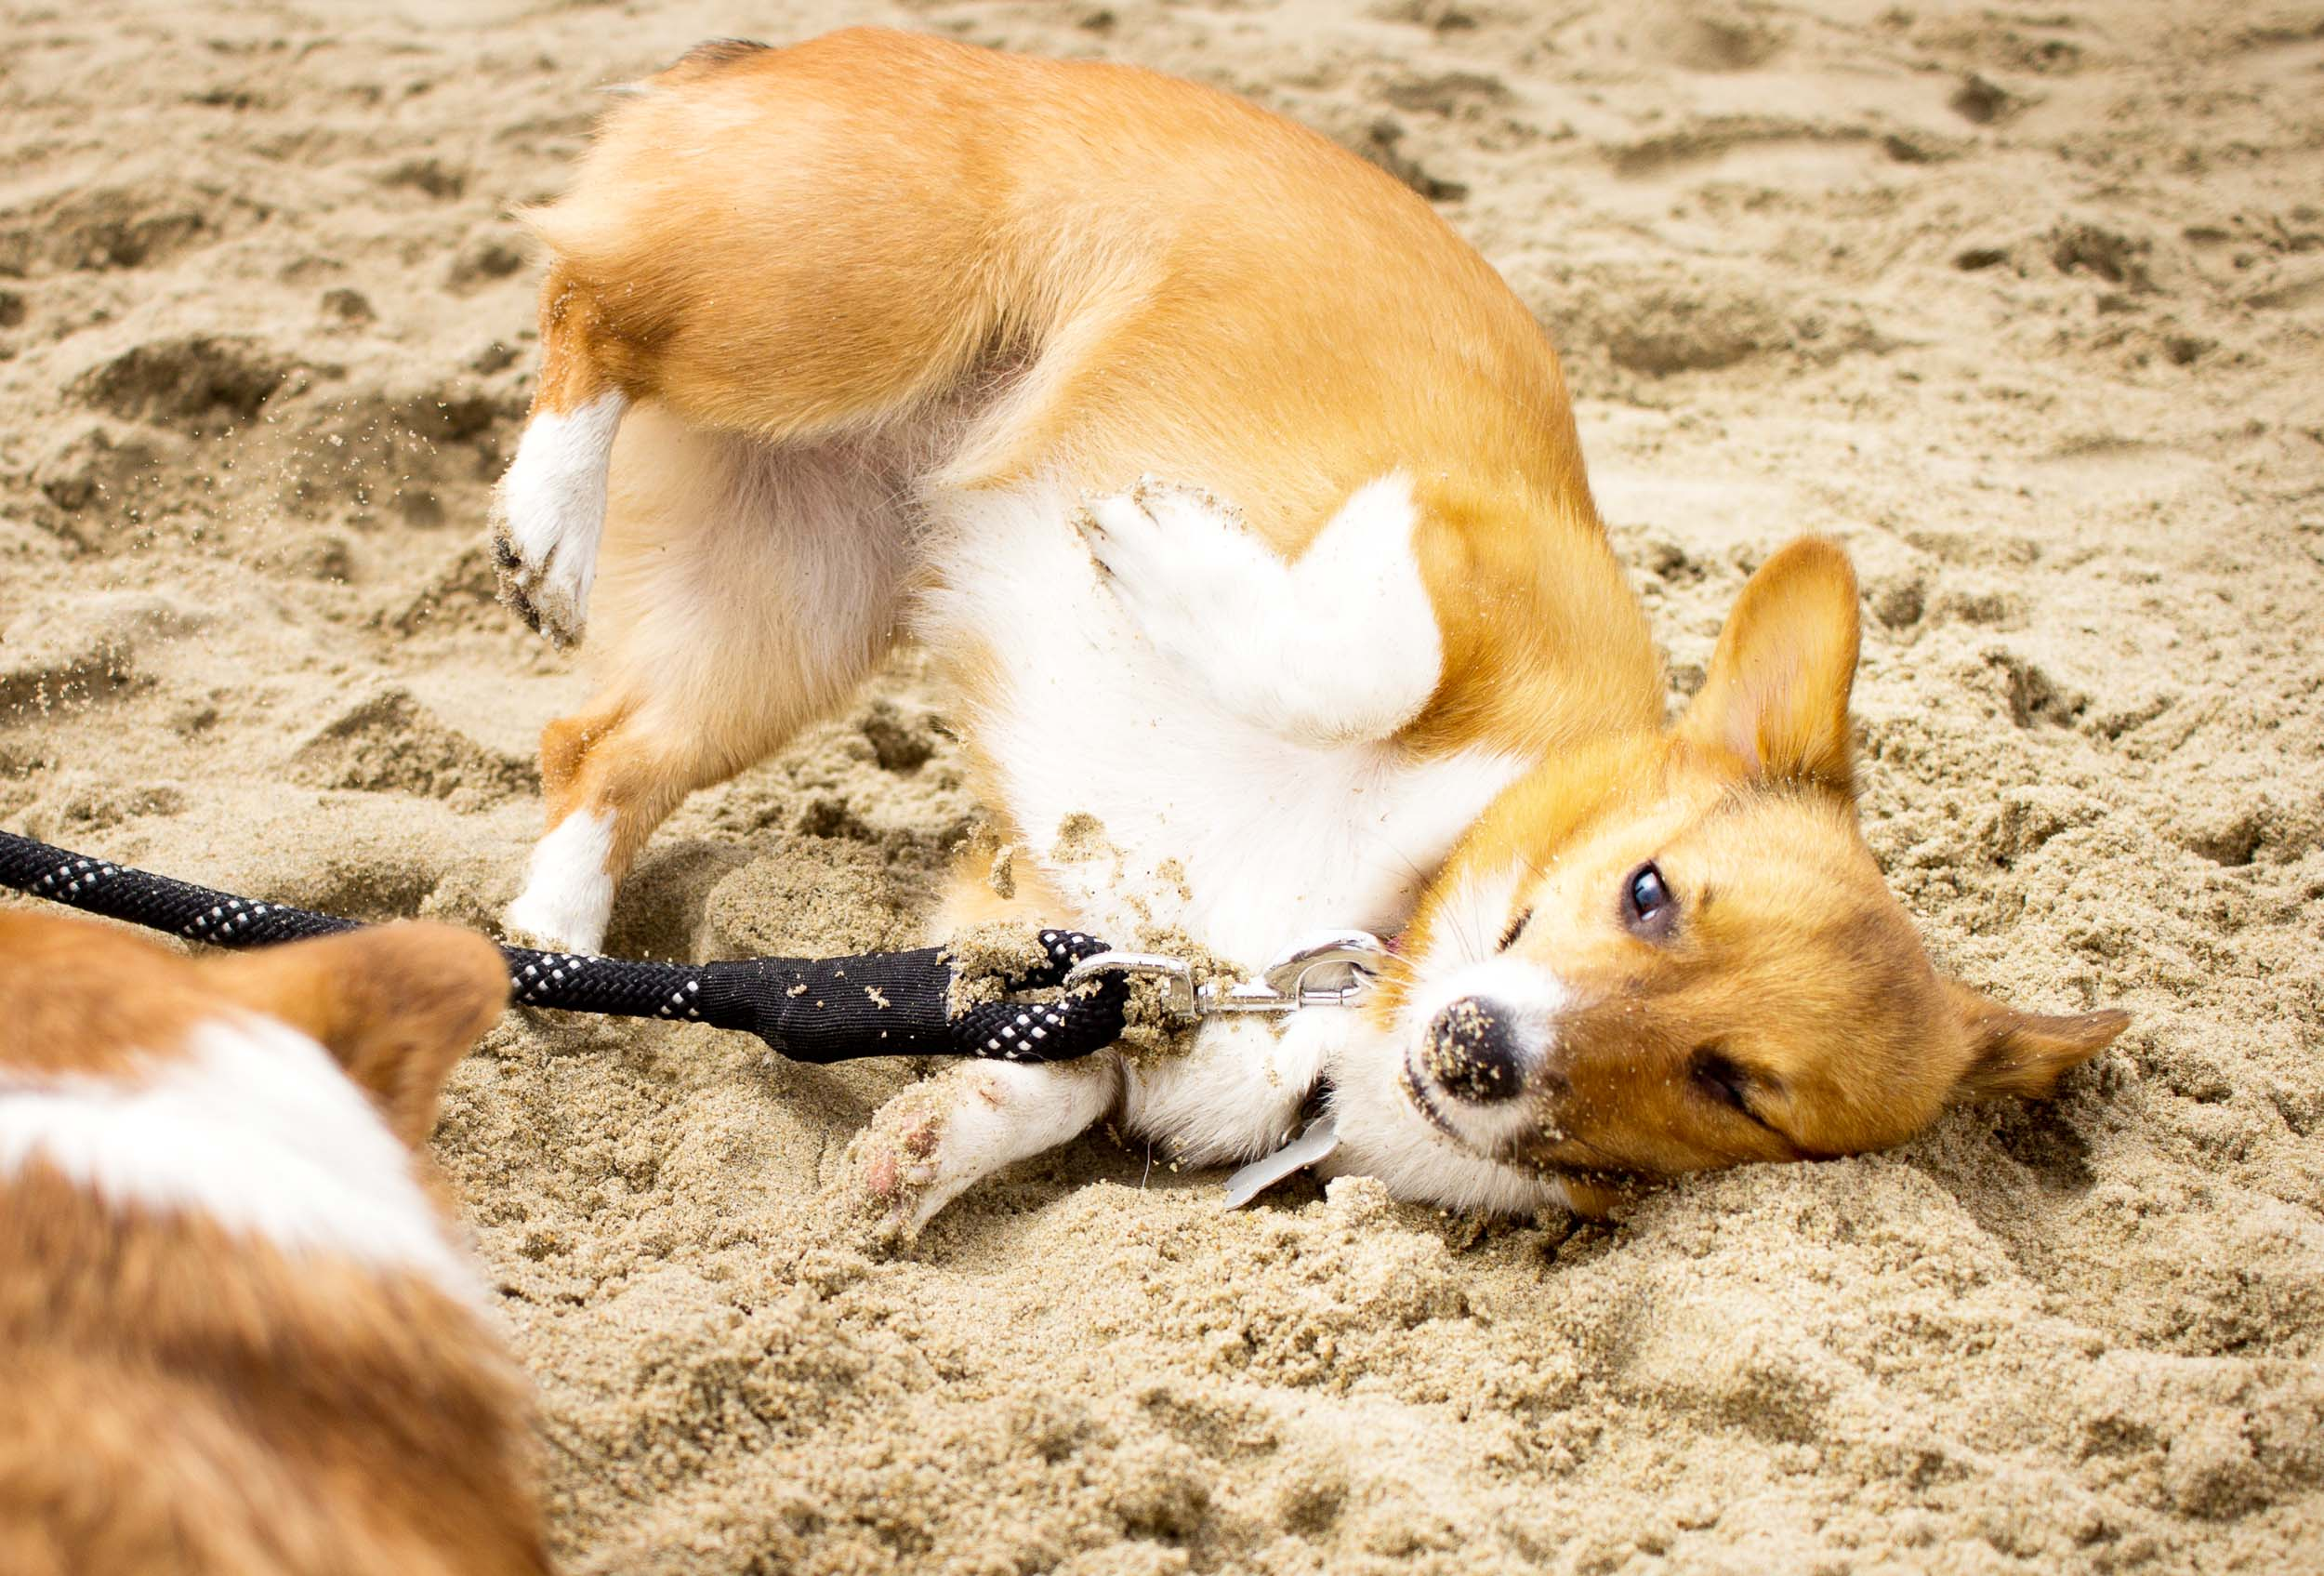 Orange-County-Dog-Photography-Pet-Huntington-Dog-Beach-SoCal-Corgi-Beach-Day_Steamer-Lee_015.JPG